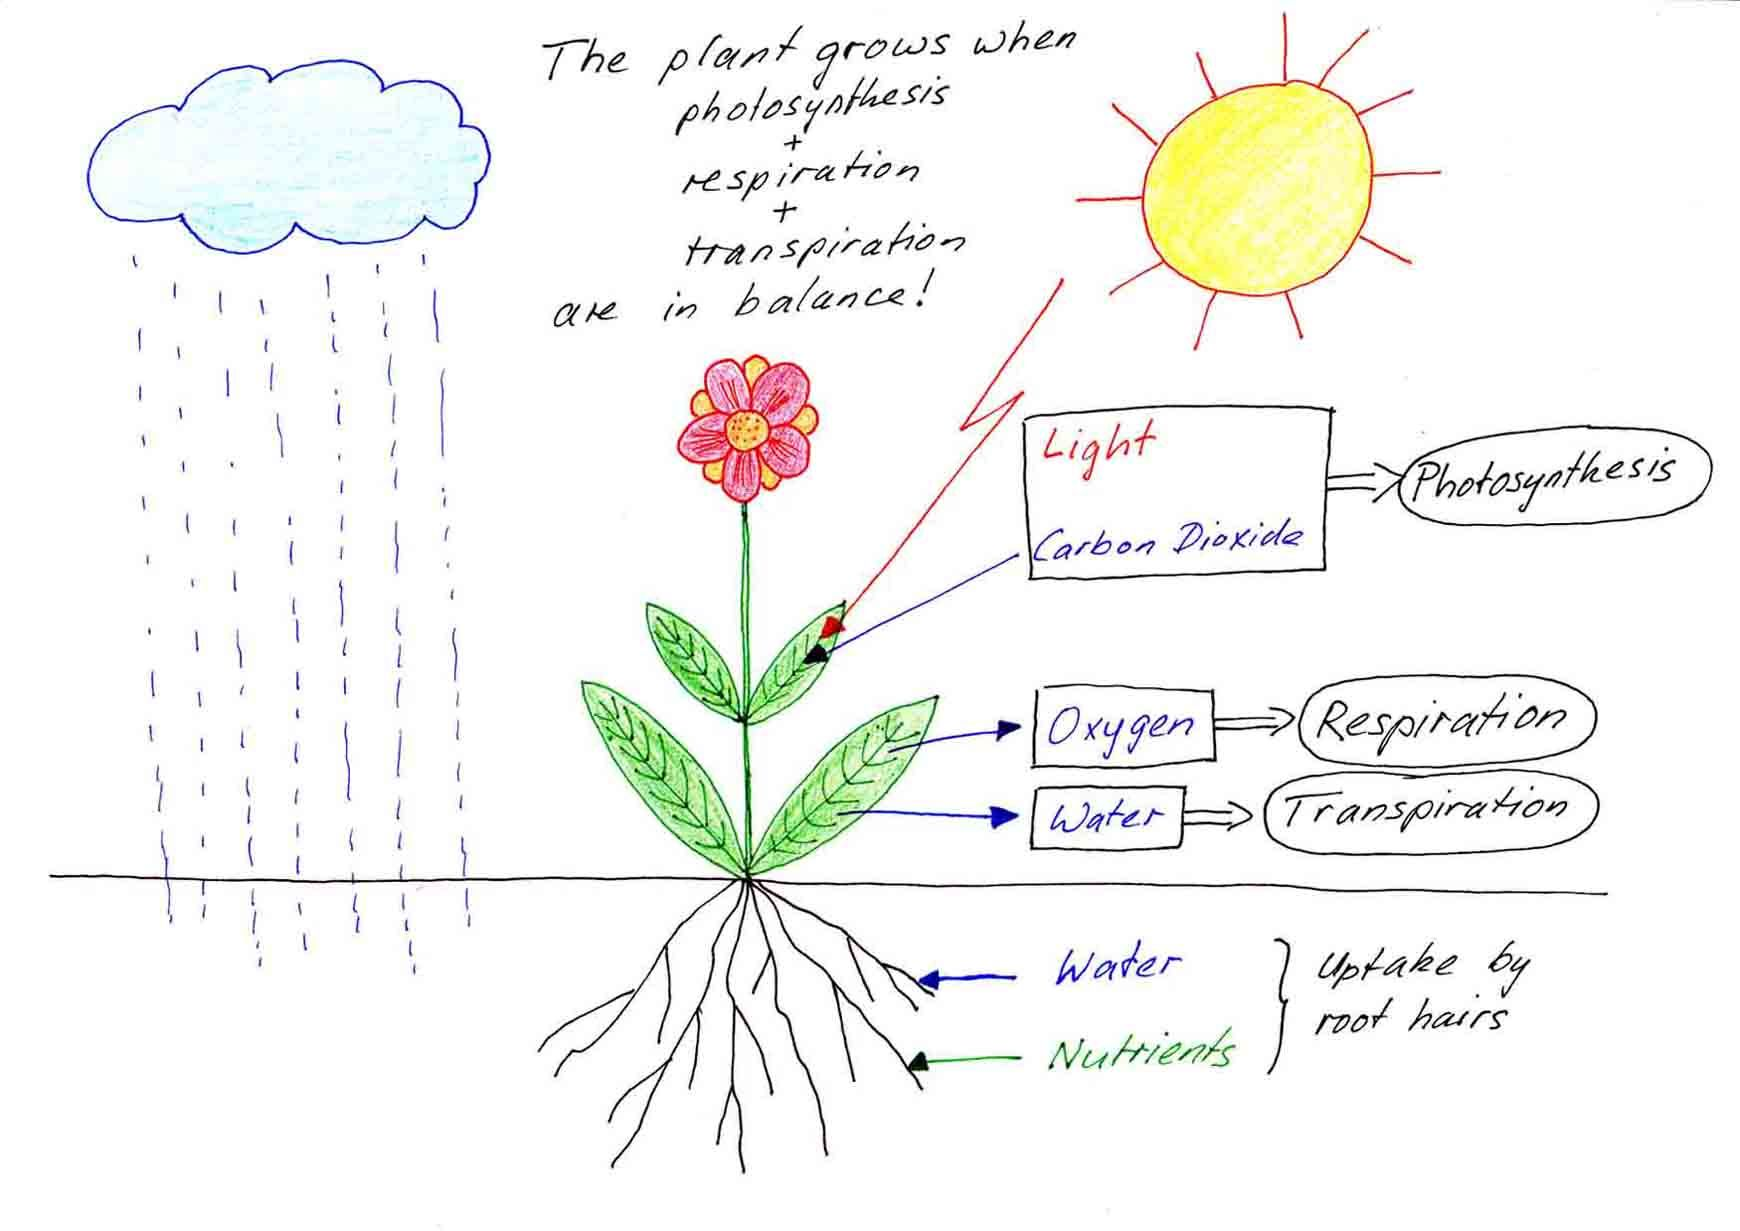 flower transpiration diagram how to wire 3 lights one switch here 39s a nice outlining the processes of